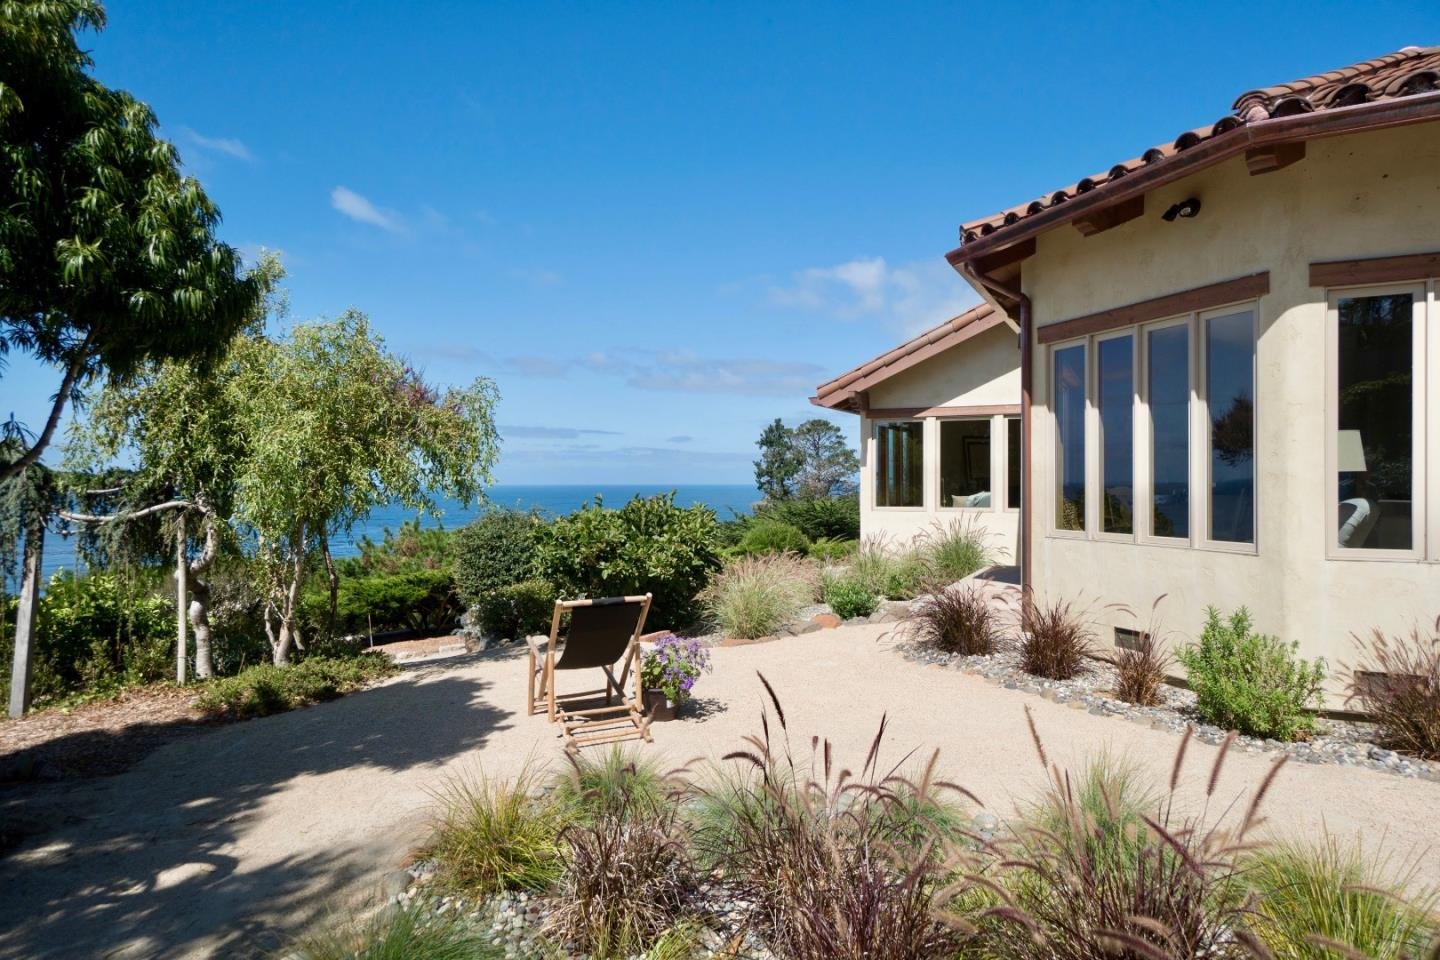 Additional photo for property listing at 32691 Coast Ridge Drive  Carmel, Kalifornien 93923 Vereinigte Staaten